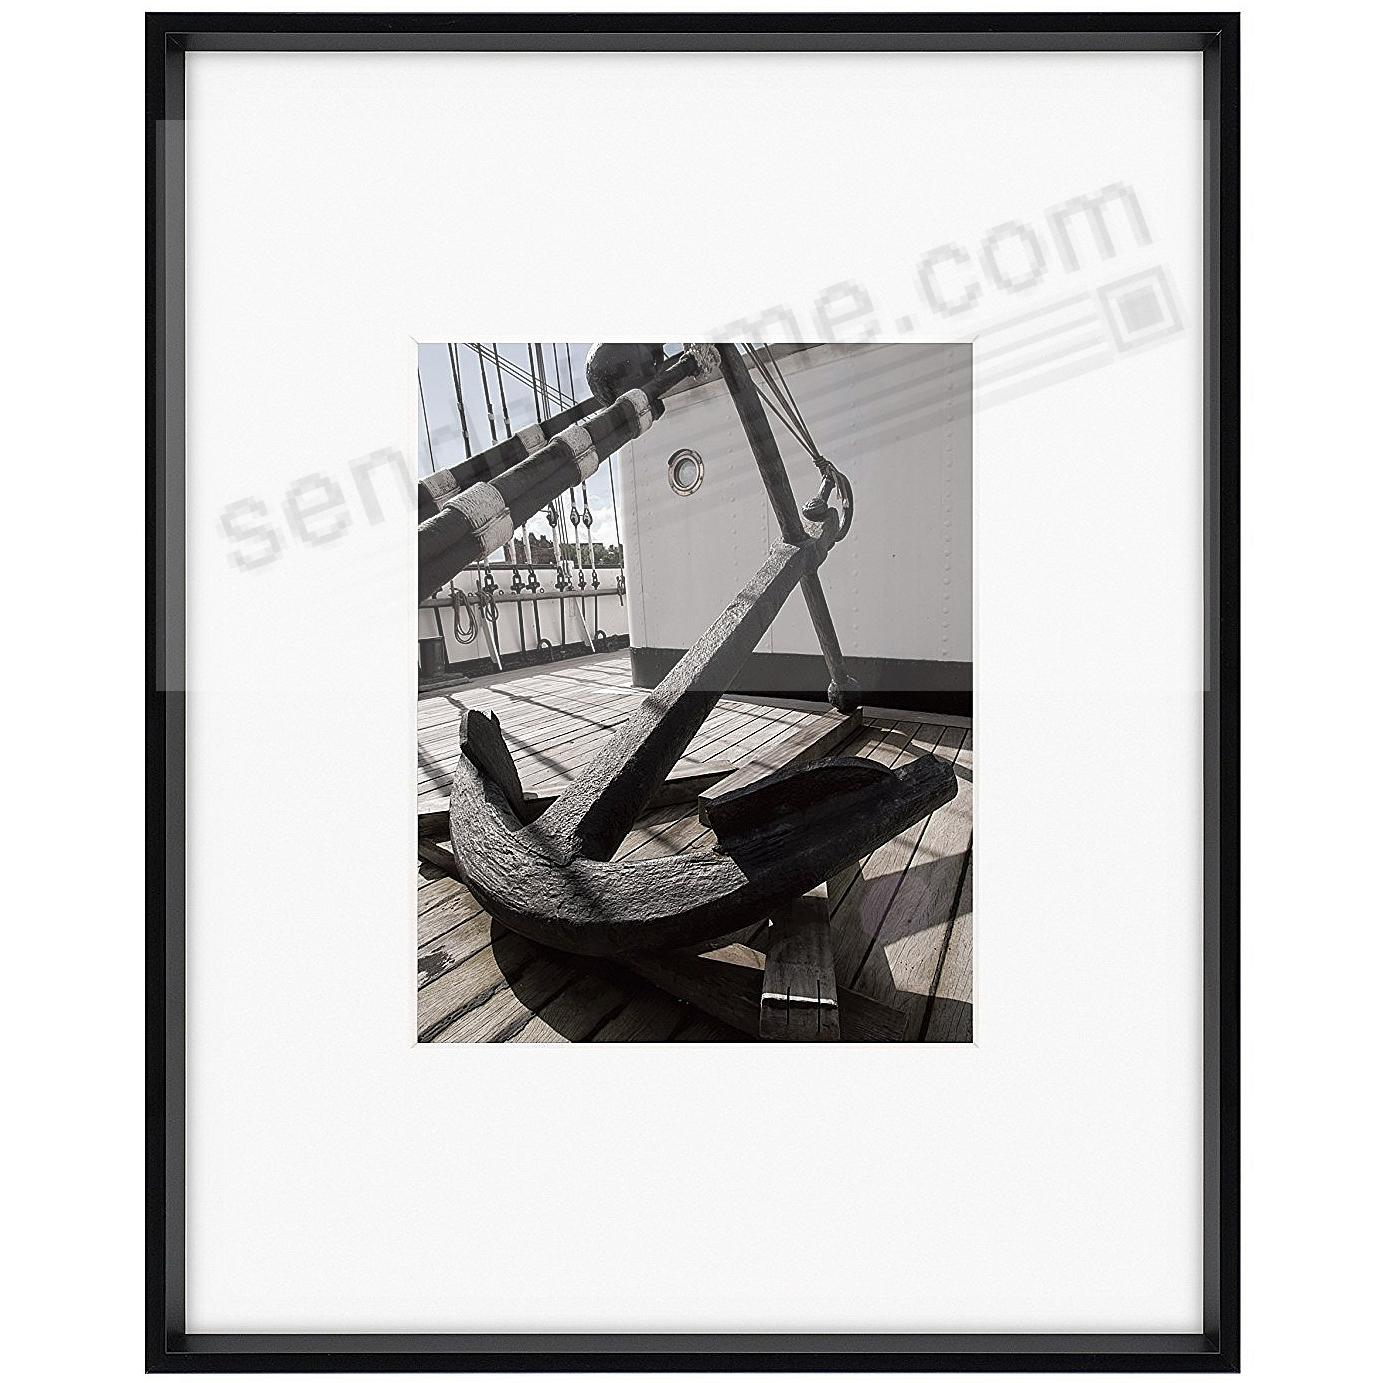 gallery matted matte black metallic frame 16x20 8x10 from artcare